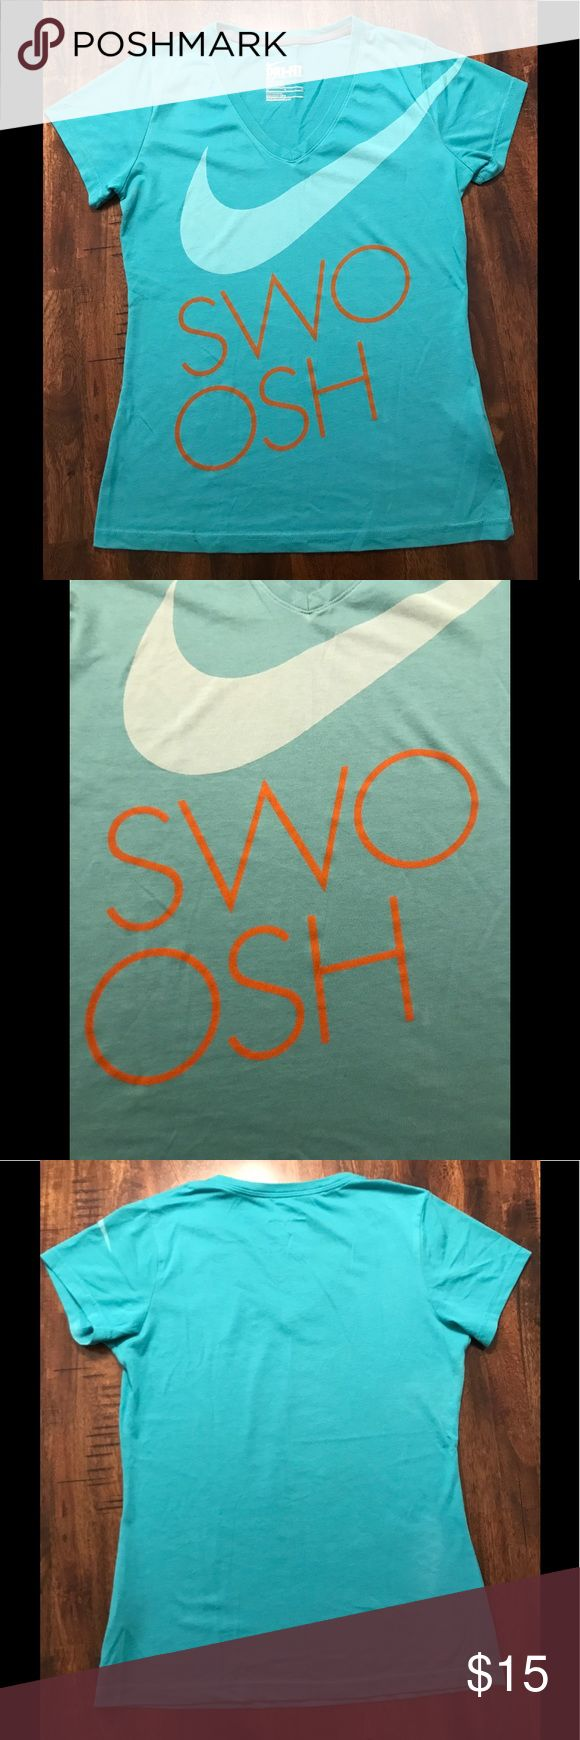 """Nike T-shirt This teal t-shirt is a great basic piece for working out or everyday wear. The front displays the Nike swoosh logo as well as the word """"swoosh"""" with a plain back. Nike Tops Tees - Short Sleeve"""